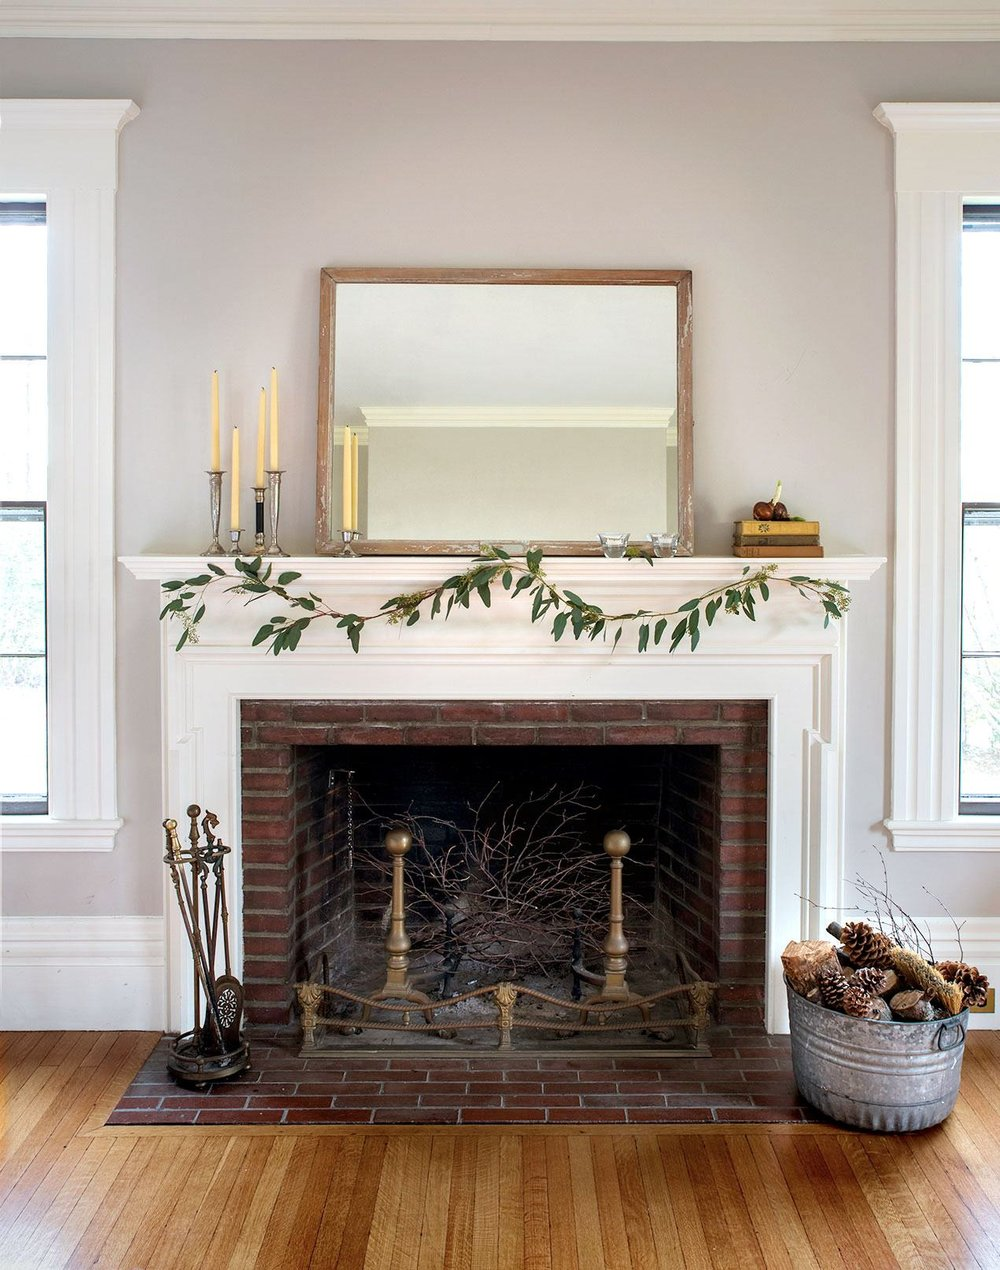 diy-budget-holiday-mantel-full-1.jpg